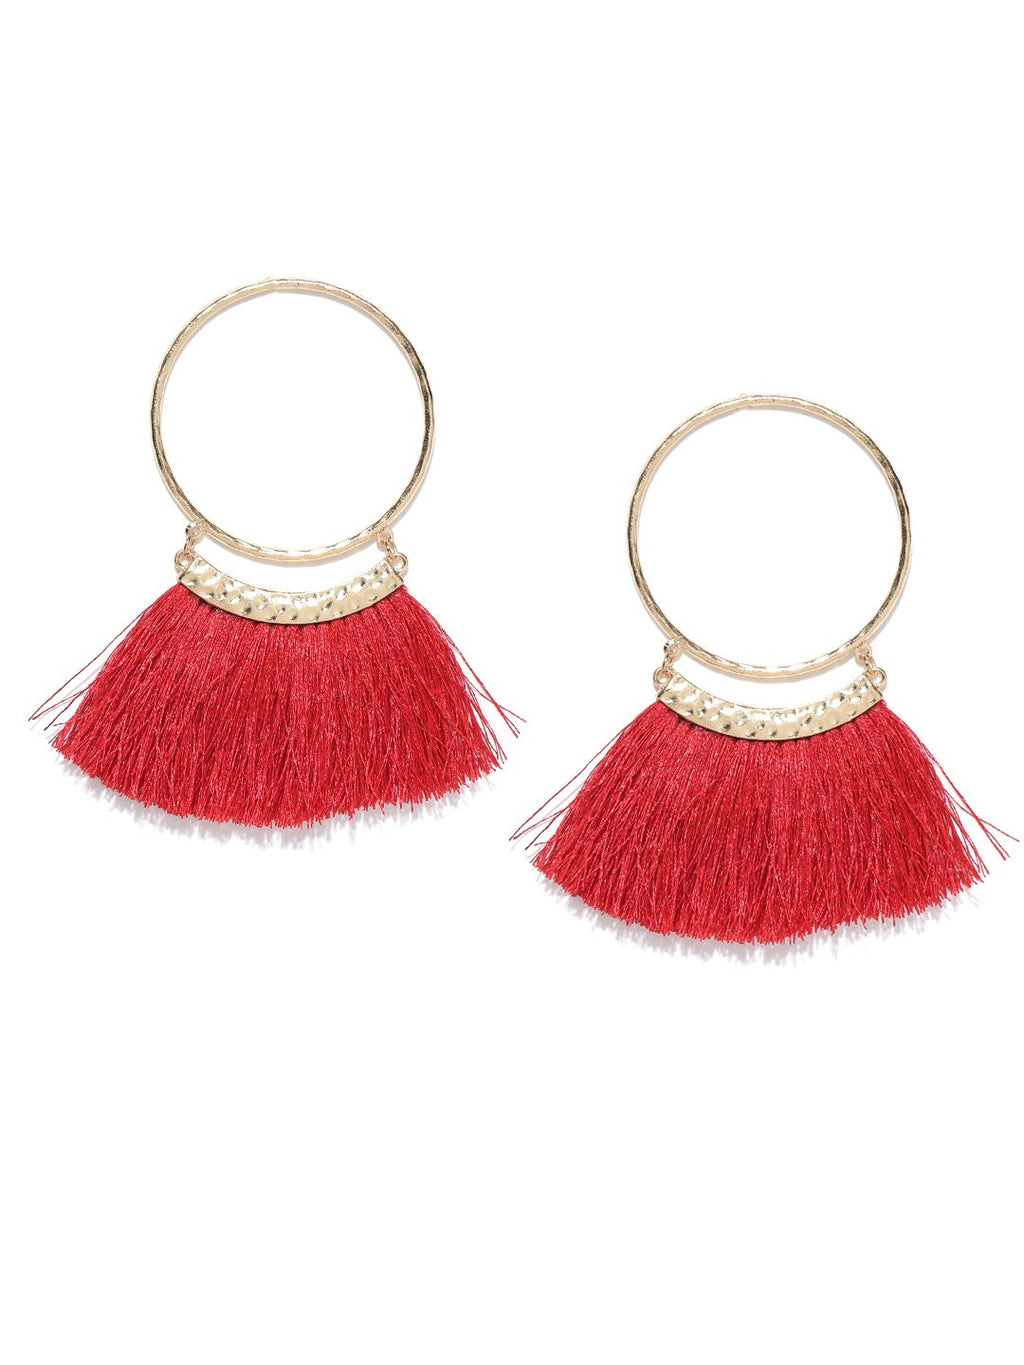 Blueberry gold and maroon tassel drop earrings